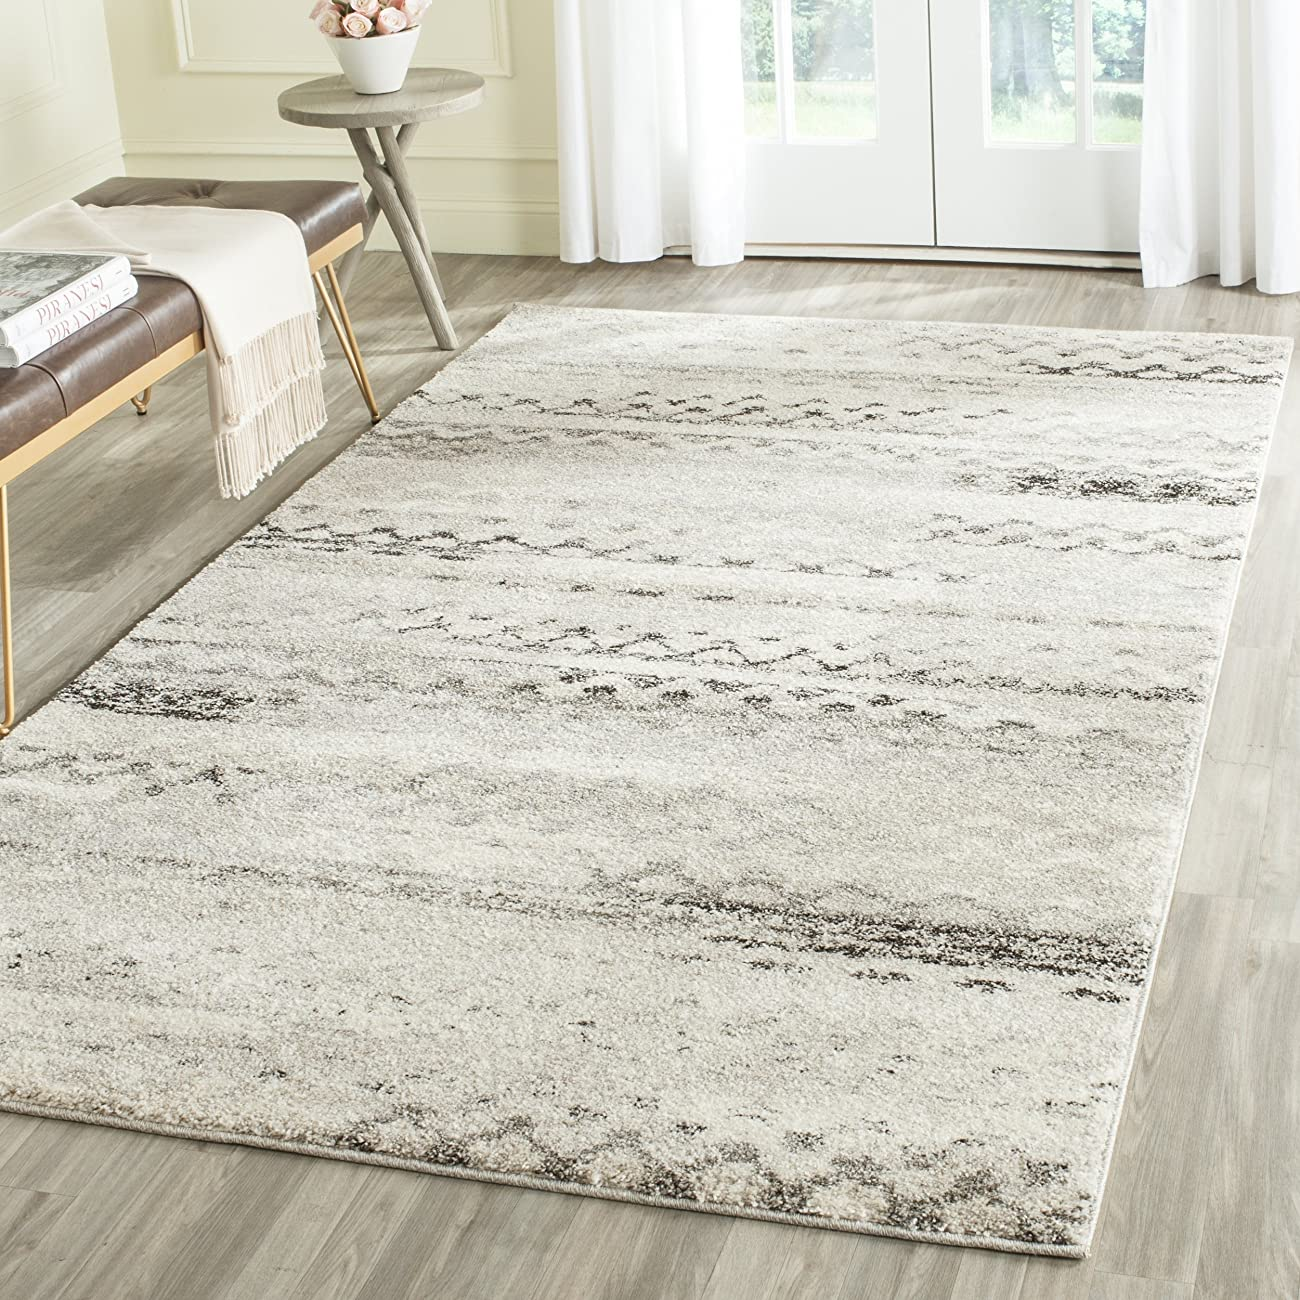 Safavieh Retro Collection RET2136-1180 Modern Abstract Cream and Grey Area Rug (6' x 9') 0